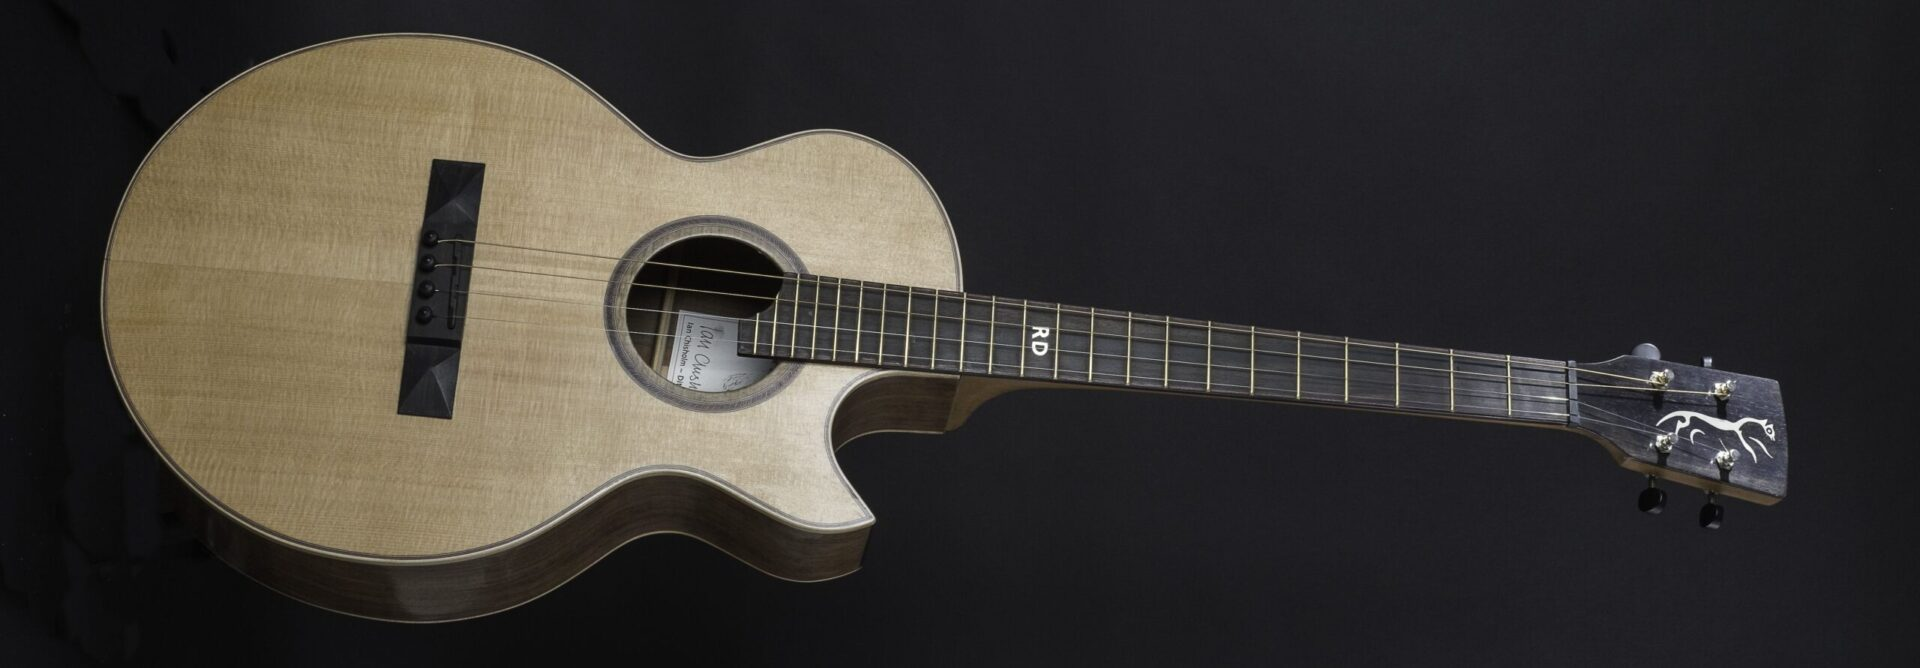 Authenticity and a Baroque Guitar